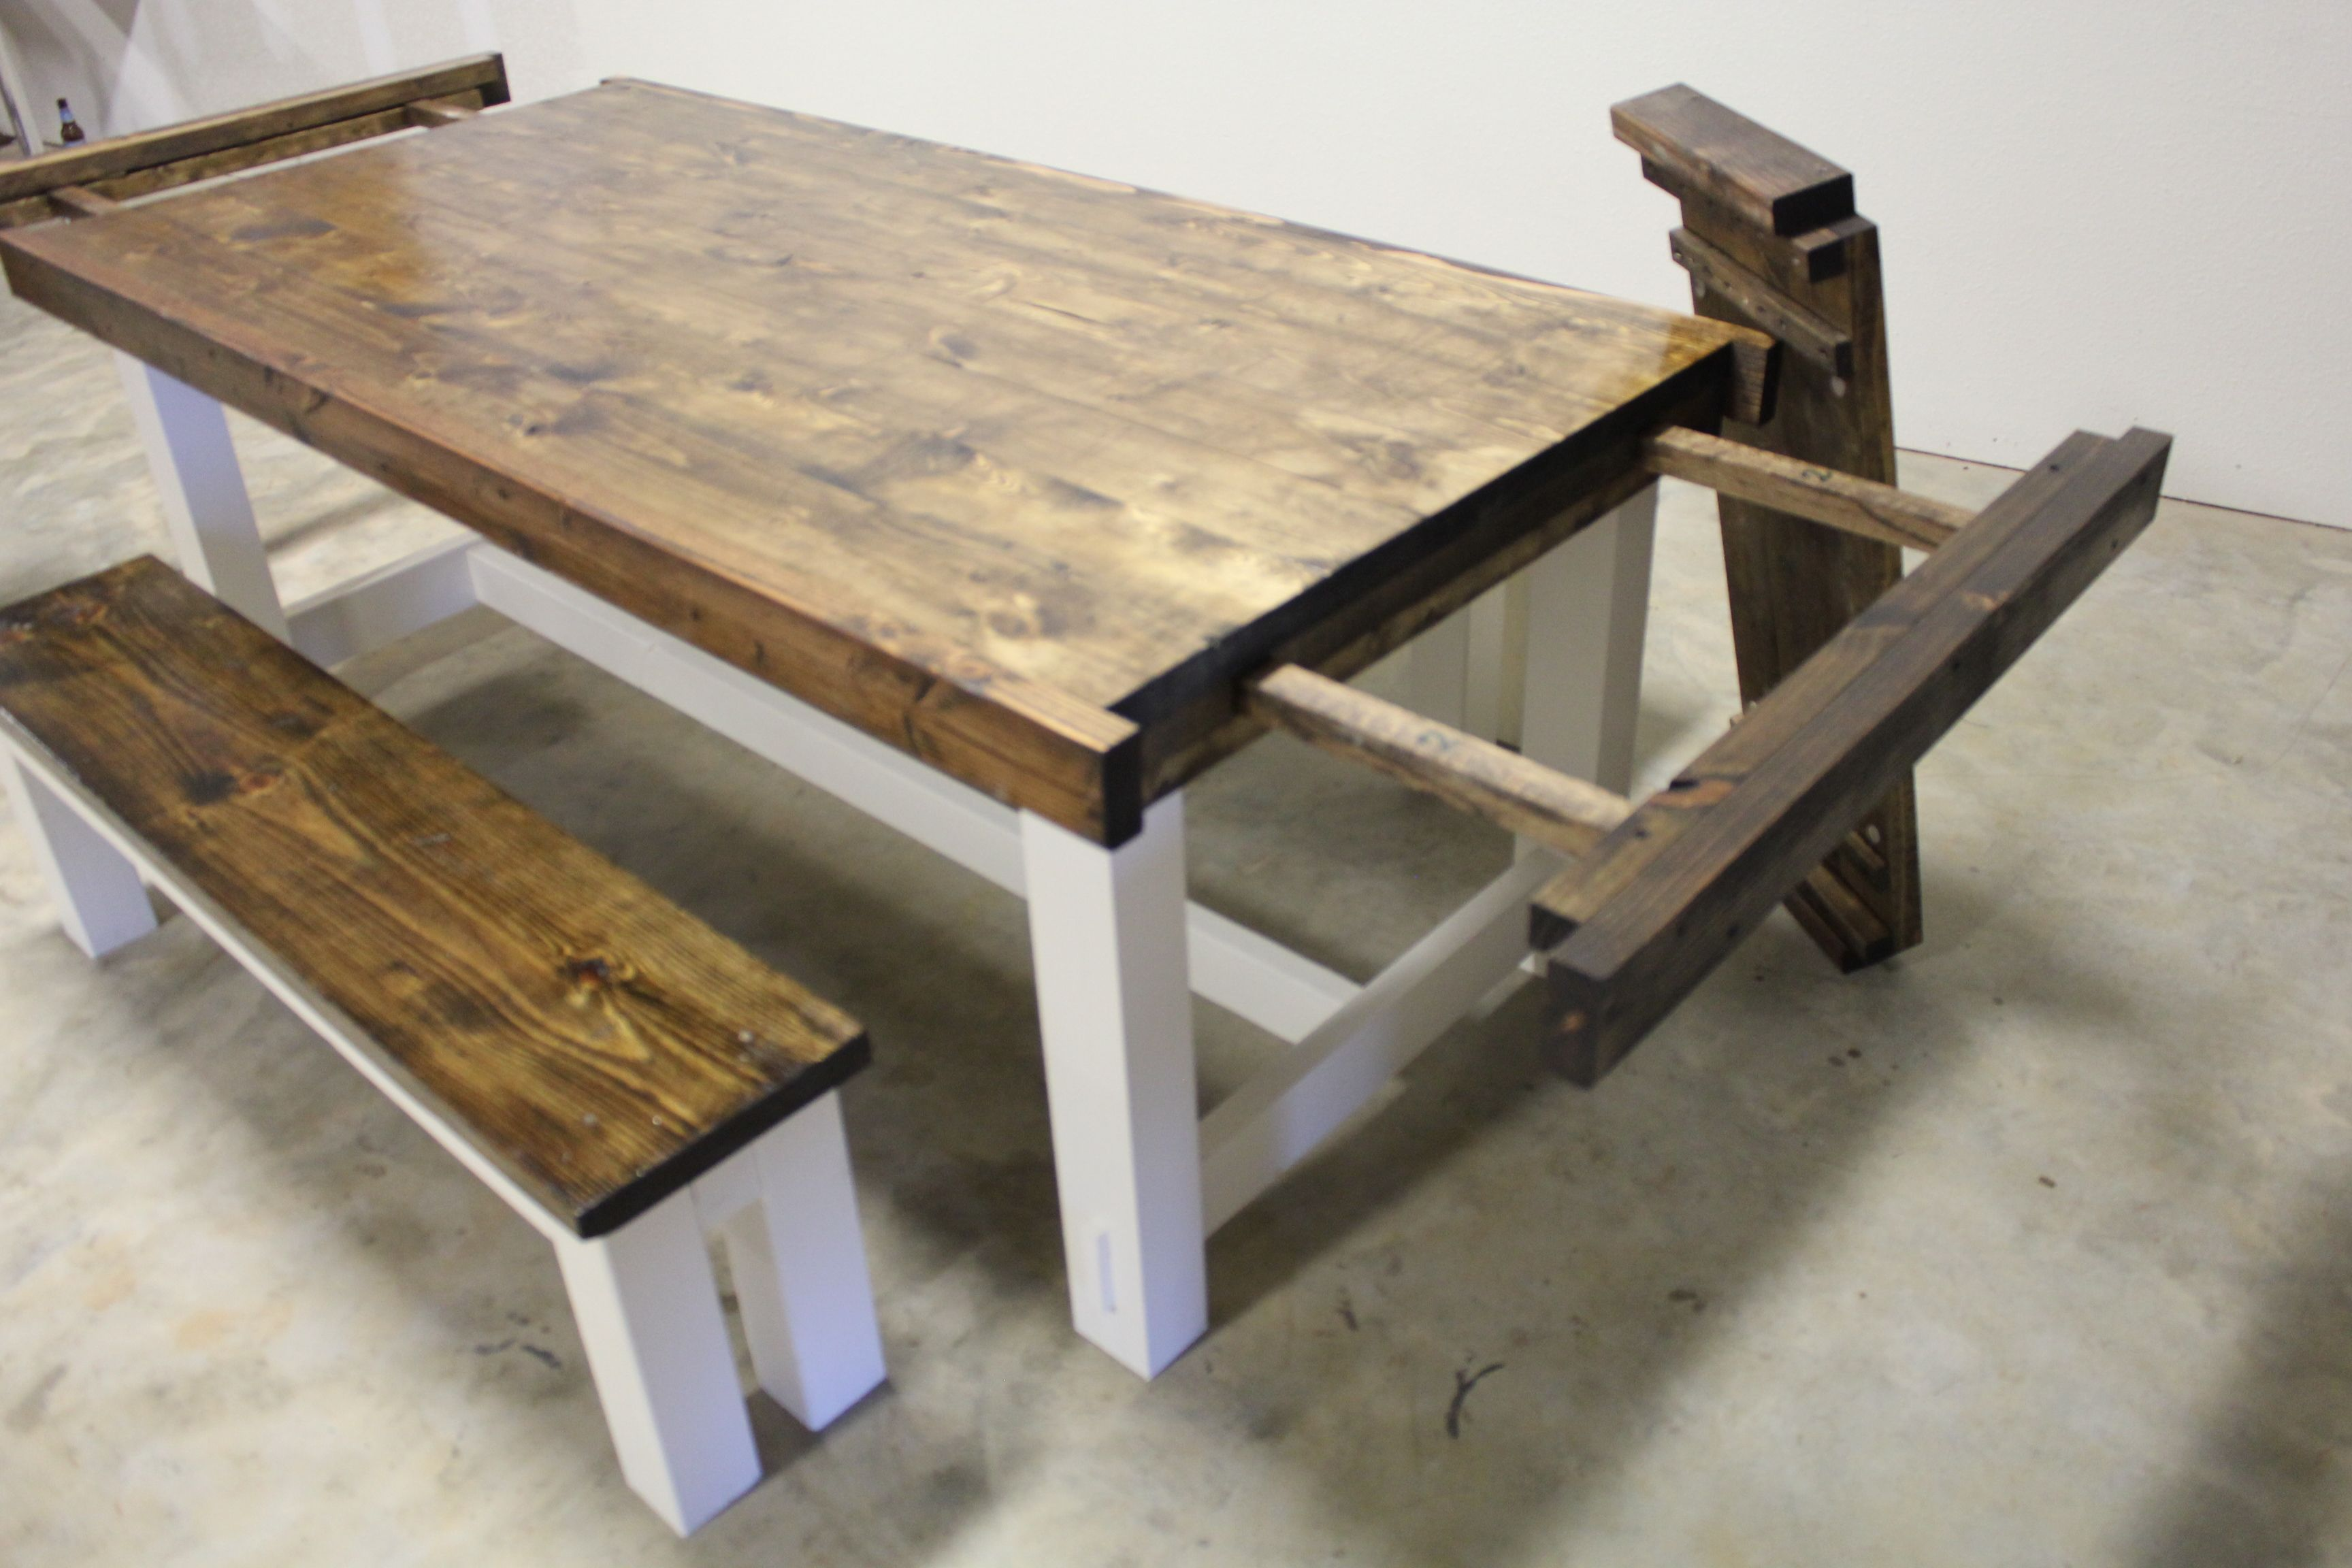 Diy Extendable Dining Table Expandable Leaf Farmhouse Table From James 43james Www